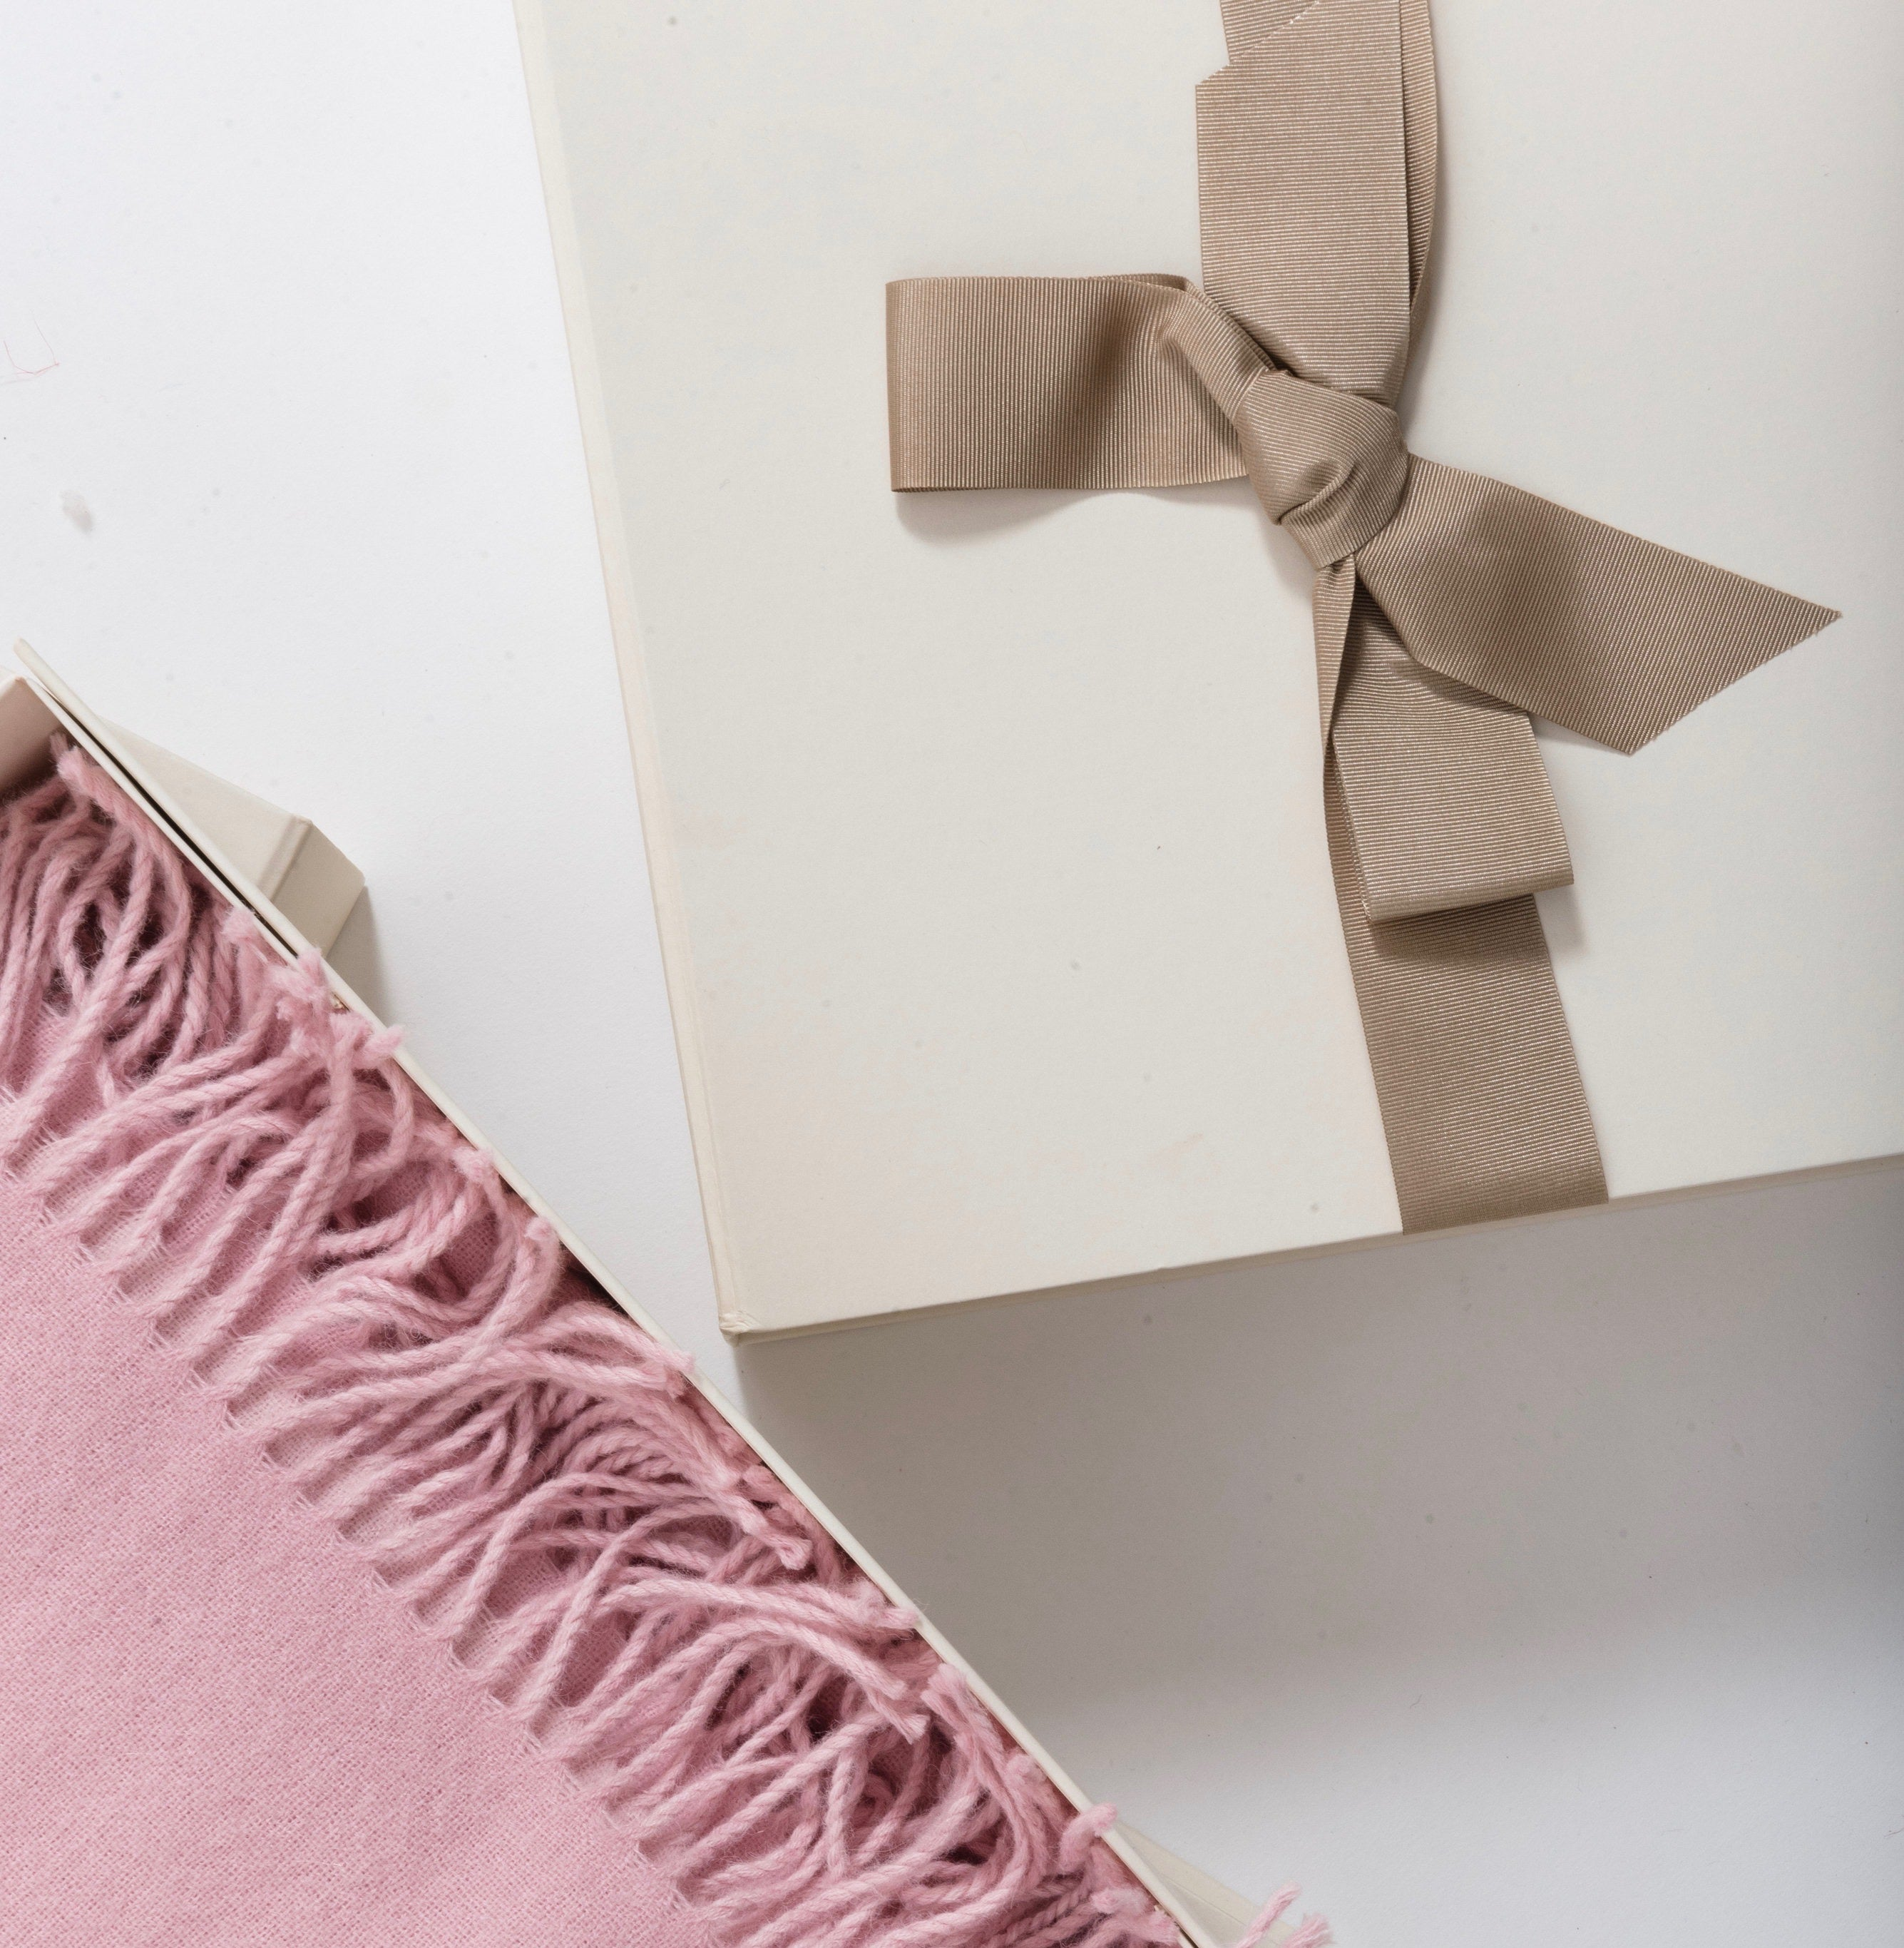 Pink blanket and gift box